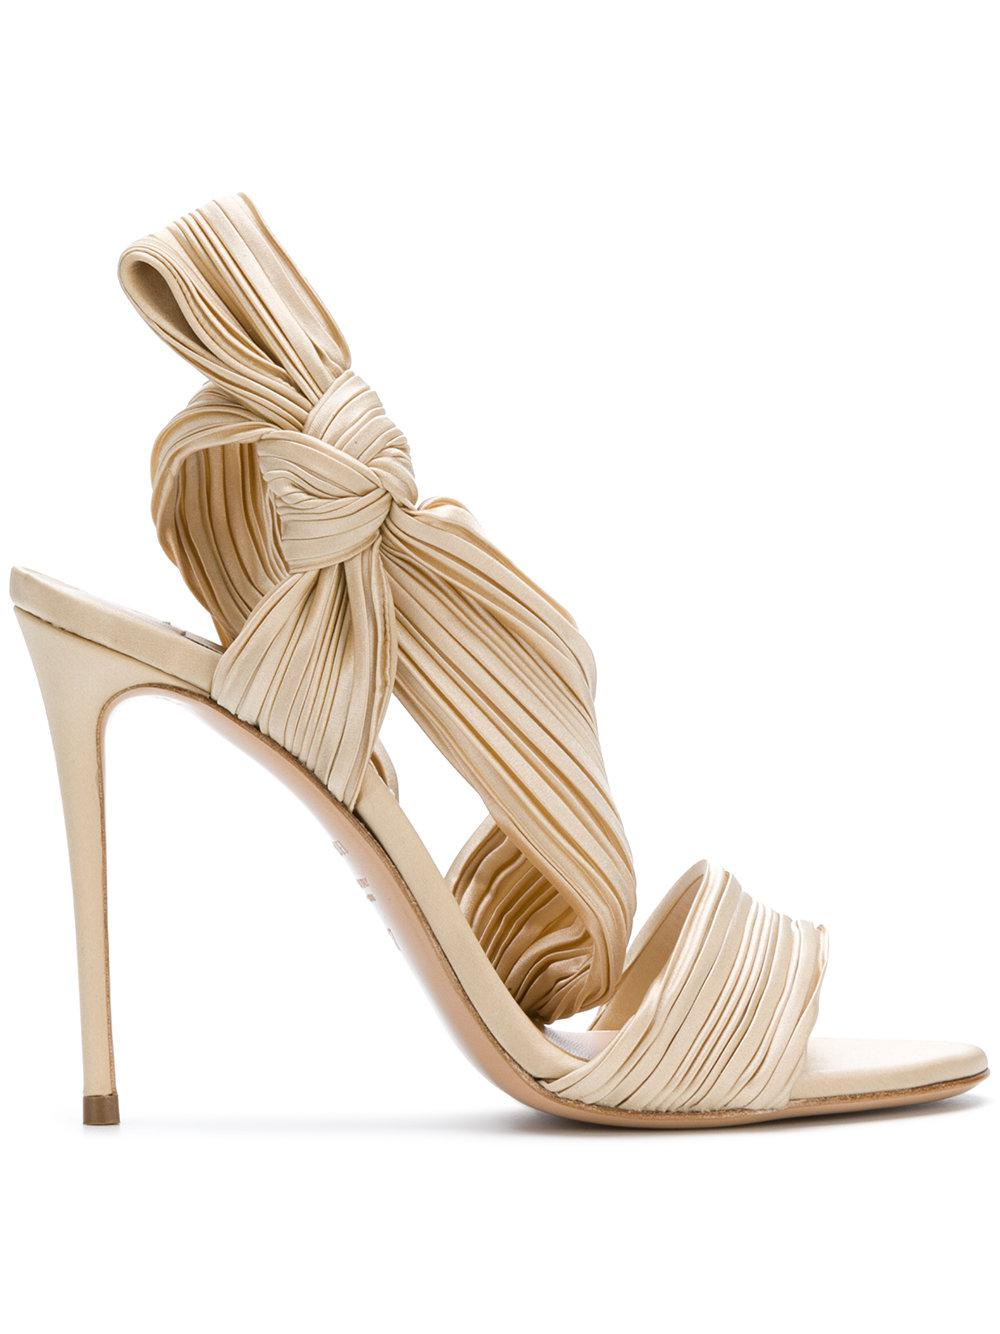 22c6b5184d Casadei Pleated Strap Sandals in Natural - Lyst